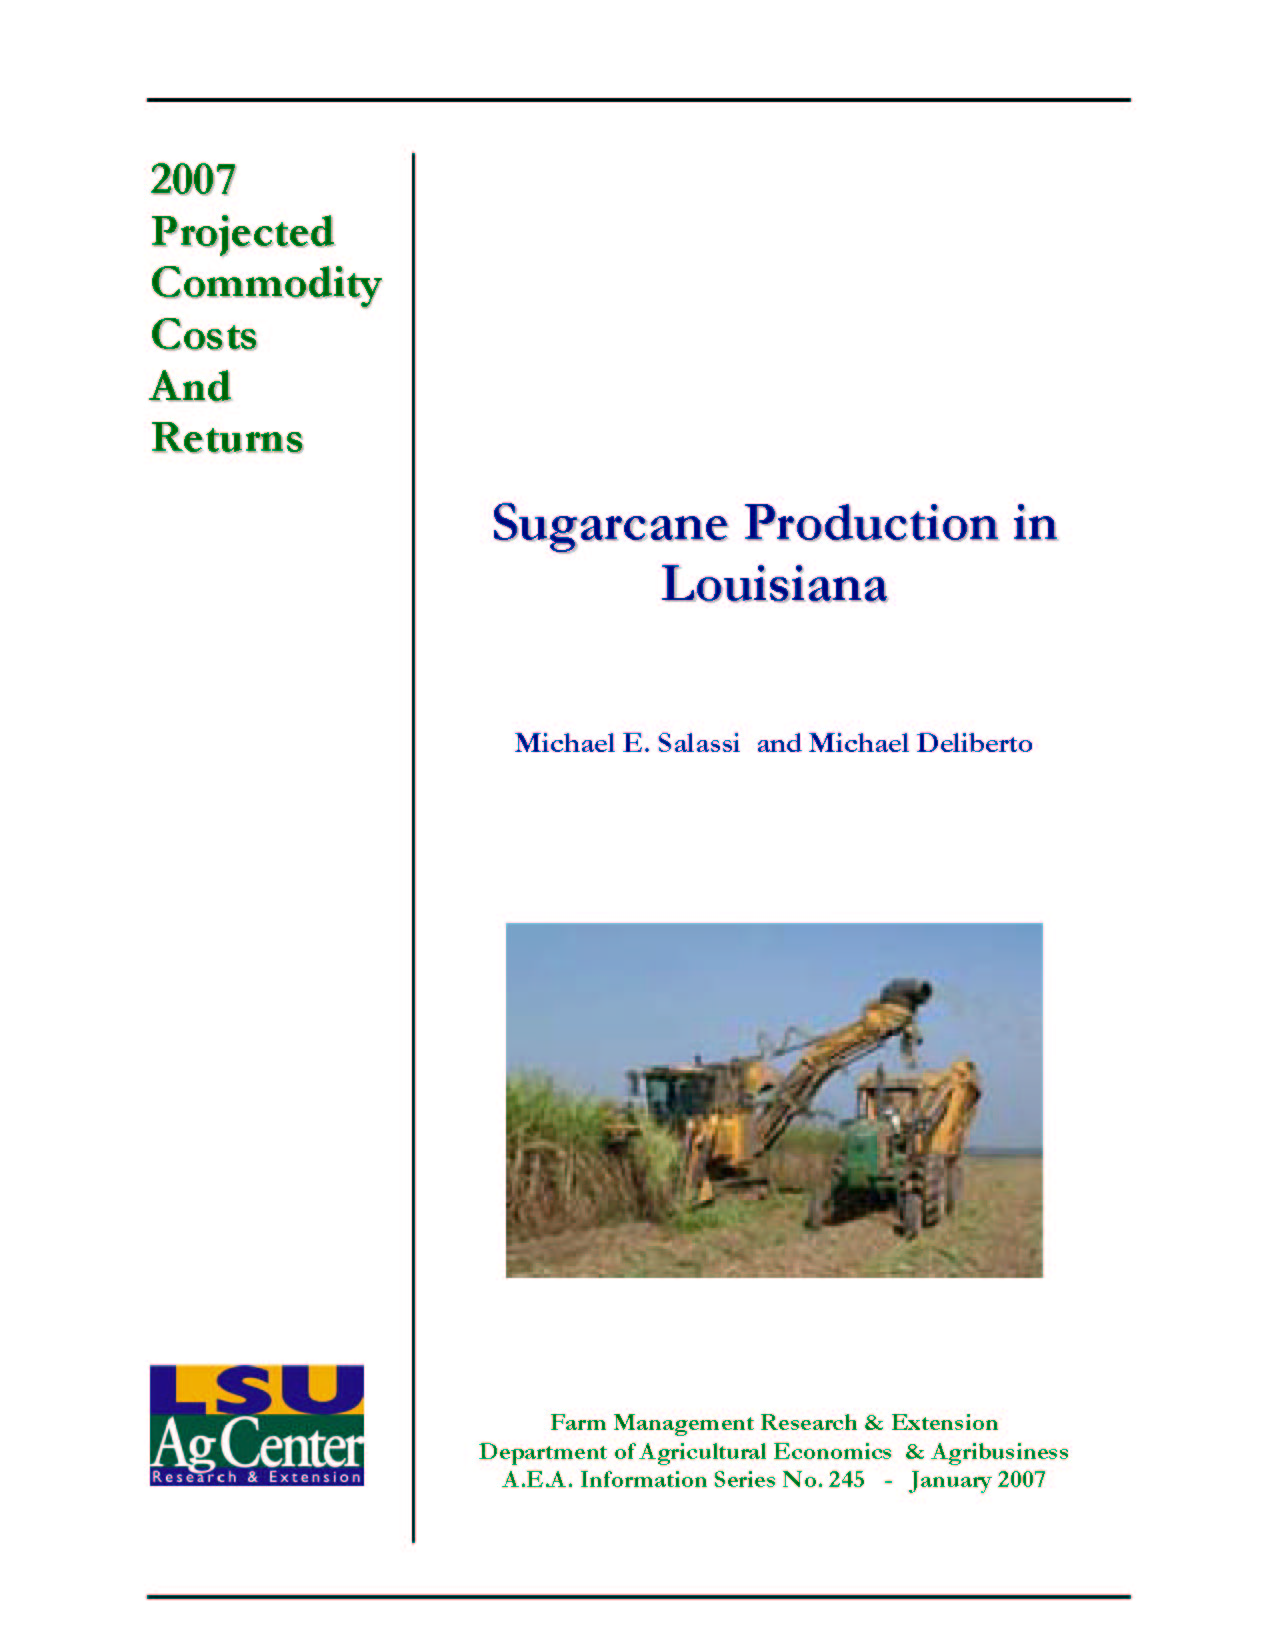 2007 Projected Louisiana Sugarcane Production Costs